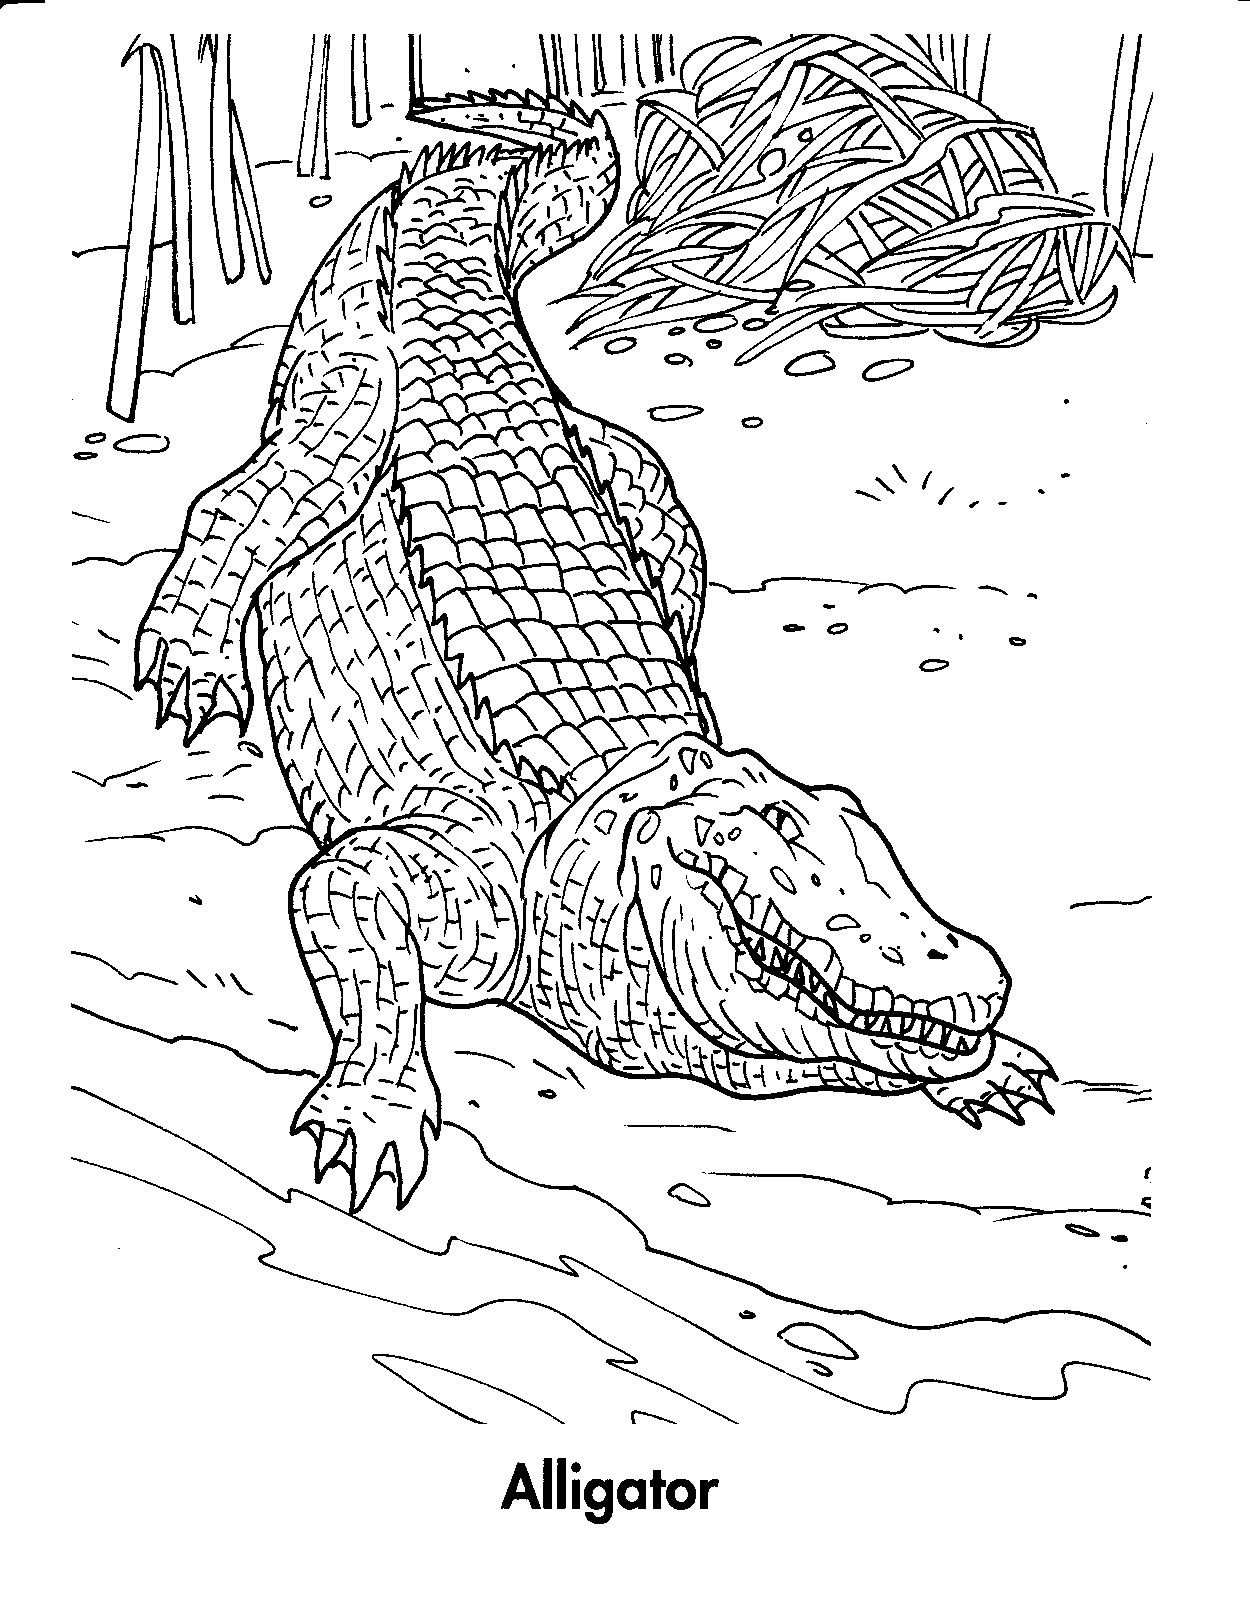 Alligator Open Mouth Coloring Page - Free Alligator Coloring Pages ... | 1610x1250